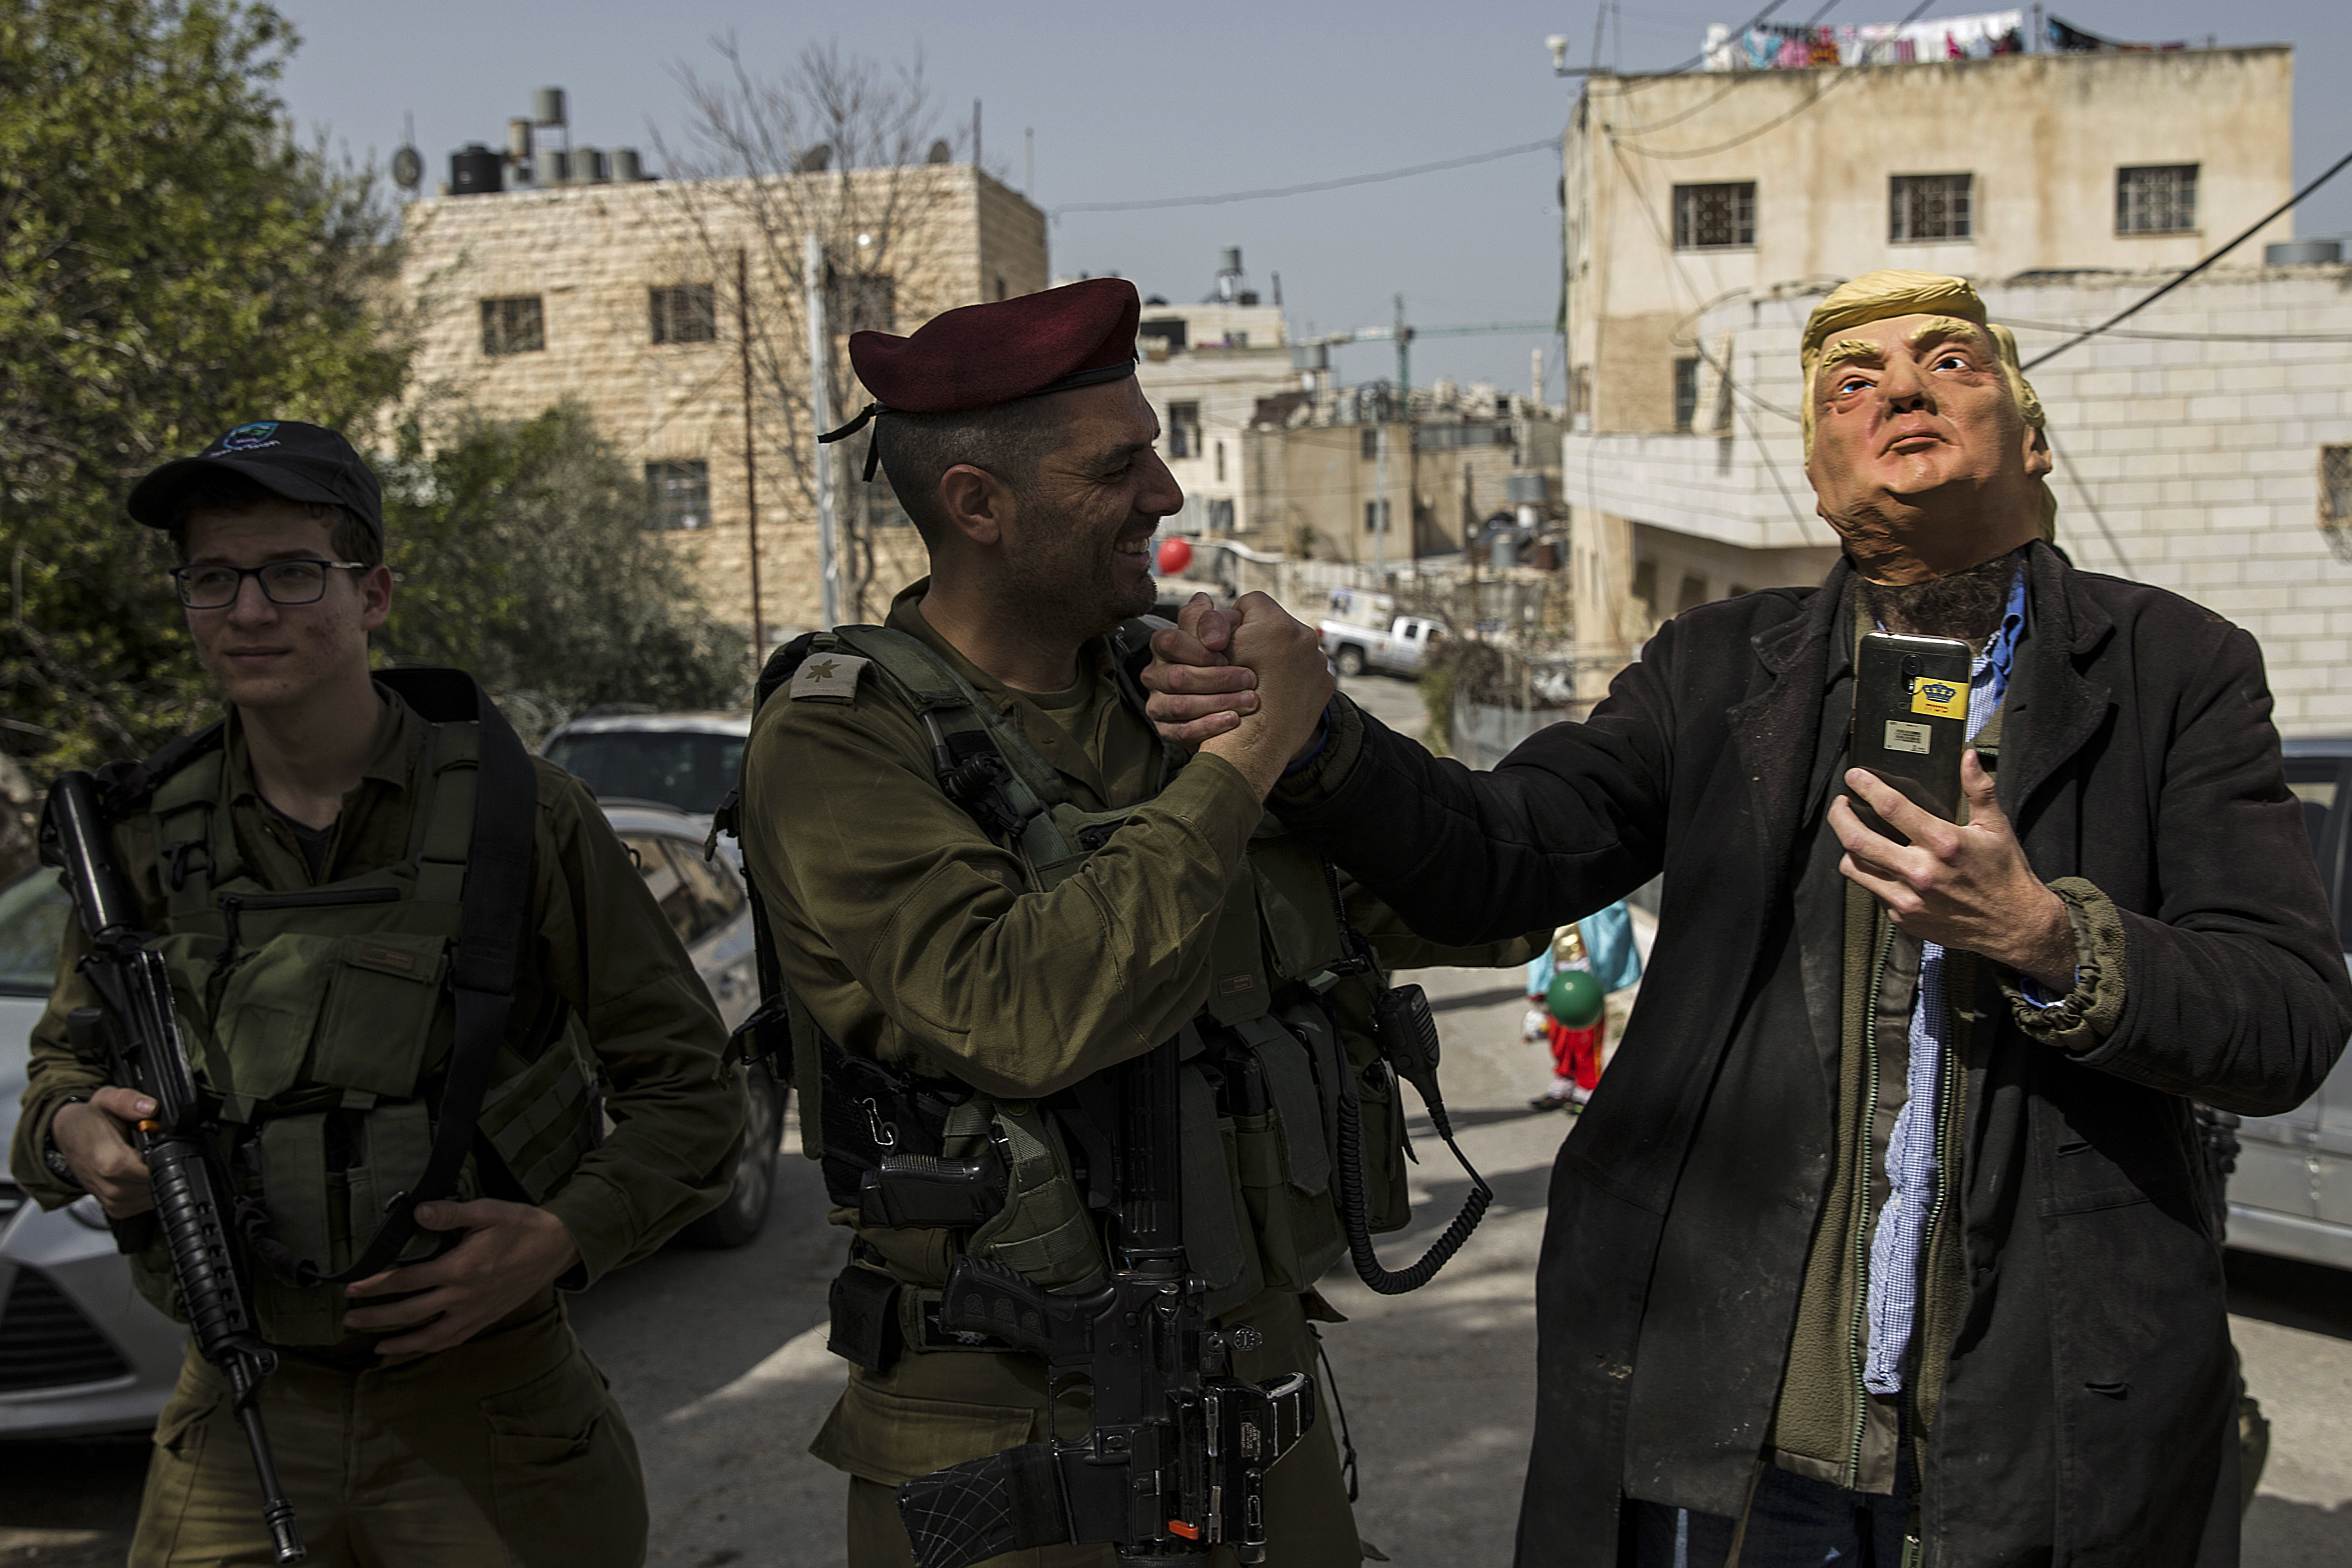 A Jewish settler wearing a U.S. President Donald Trump mask shakes hands with an  Israeli soldier as he participates in the annual parade marking the Jewish holiday of Purim, in Hebron, Thursday, March 1, 2018. The festival of Purim commemorates the rescue of Jews from genocide in ancient Persia. (AP Photo/Tsafrir Abayov)